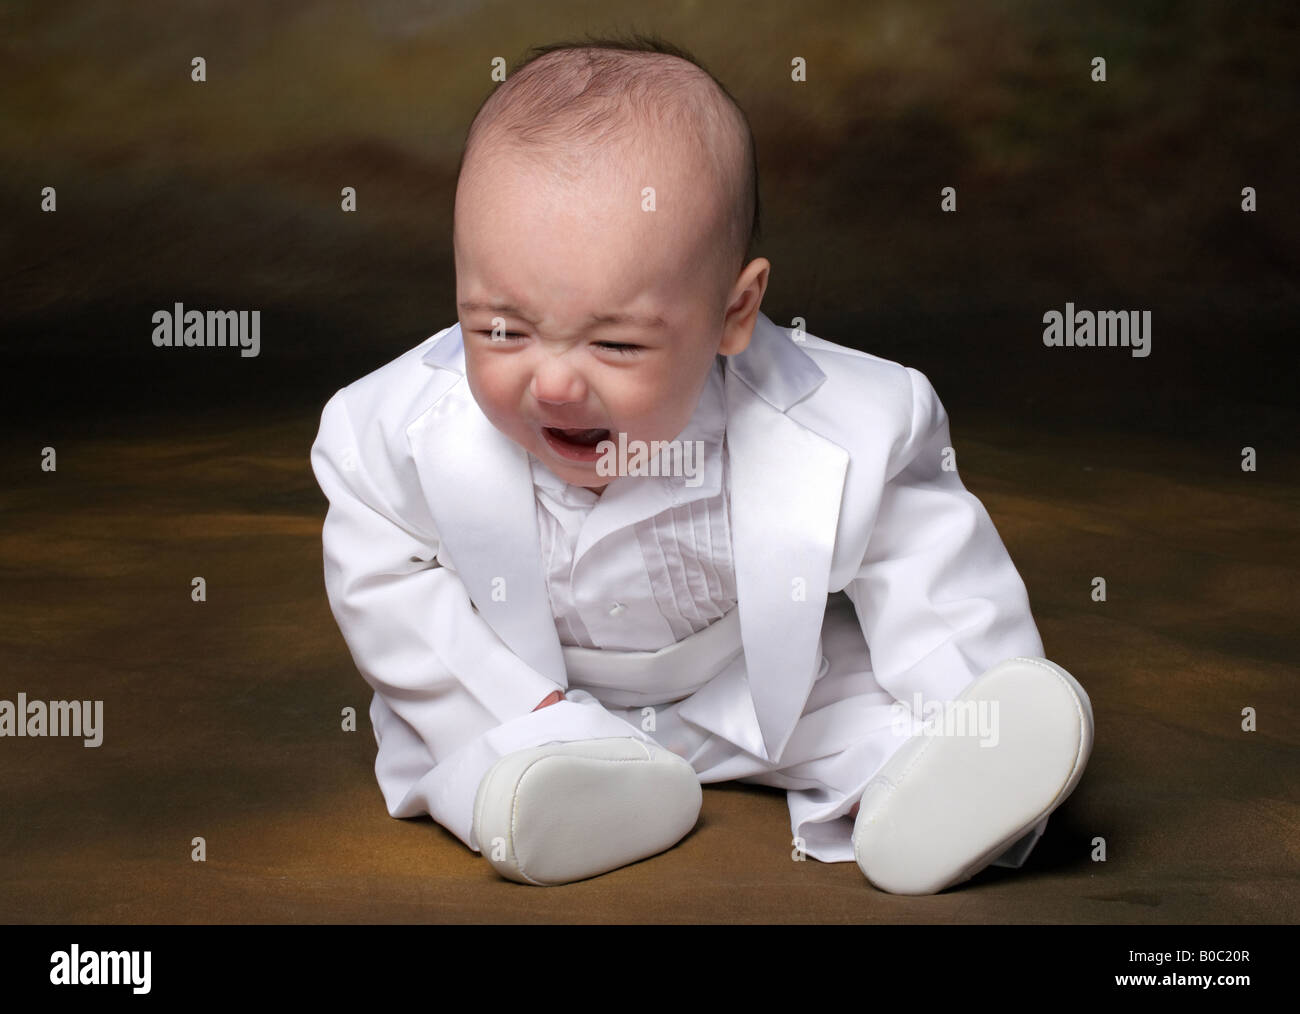 little biracial baby boy sitting in white tuxedo crying - Stock Image